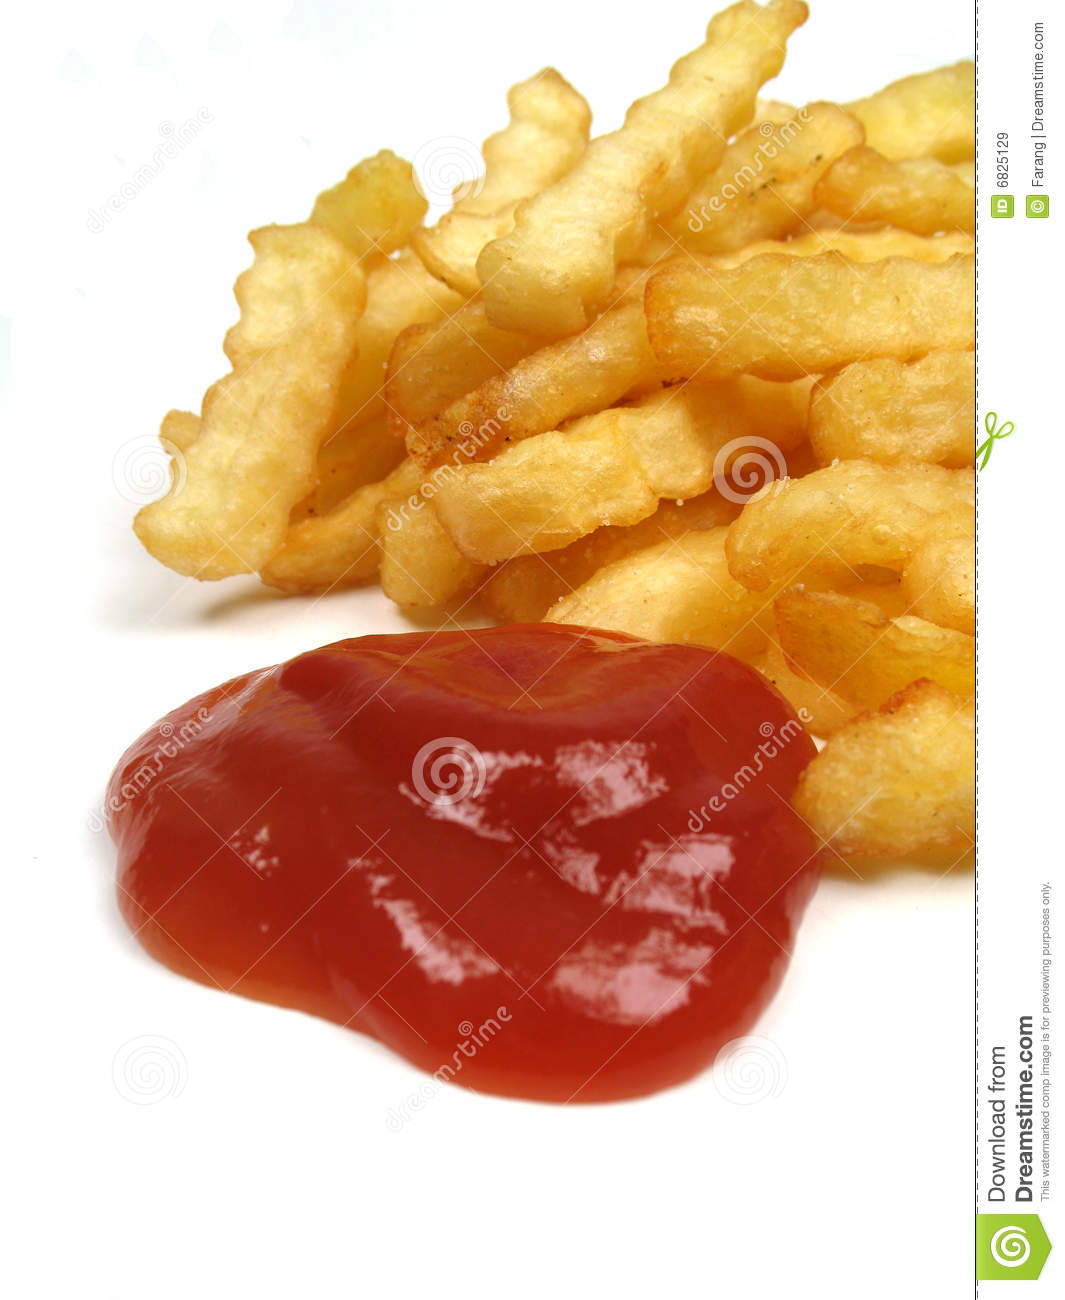 french fries with ketchup - photo #25